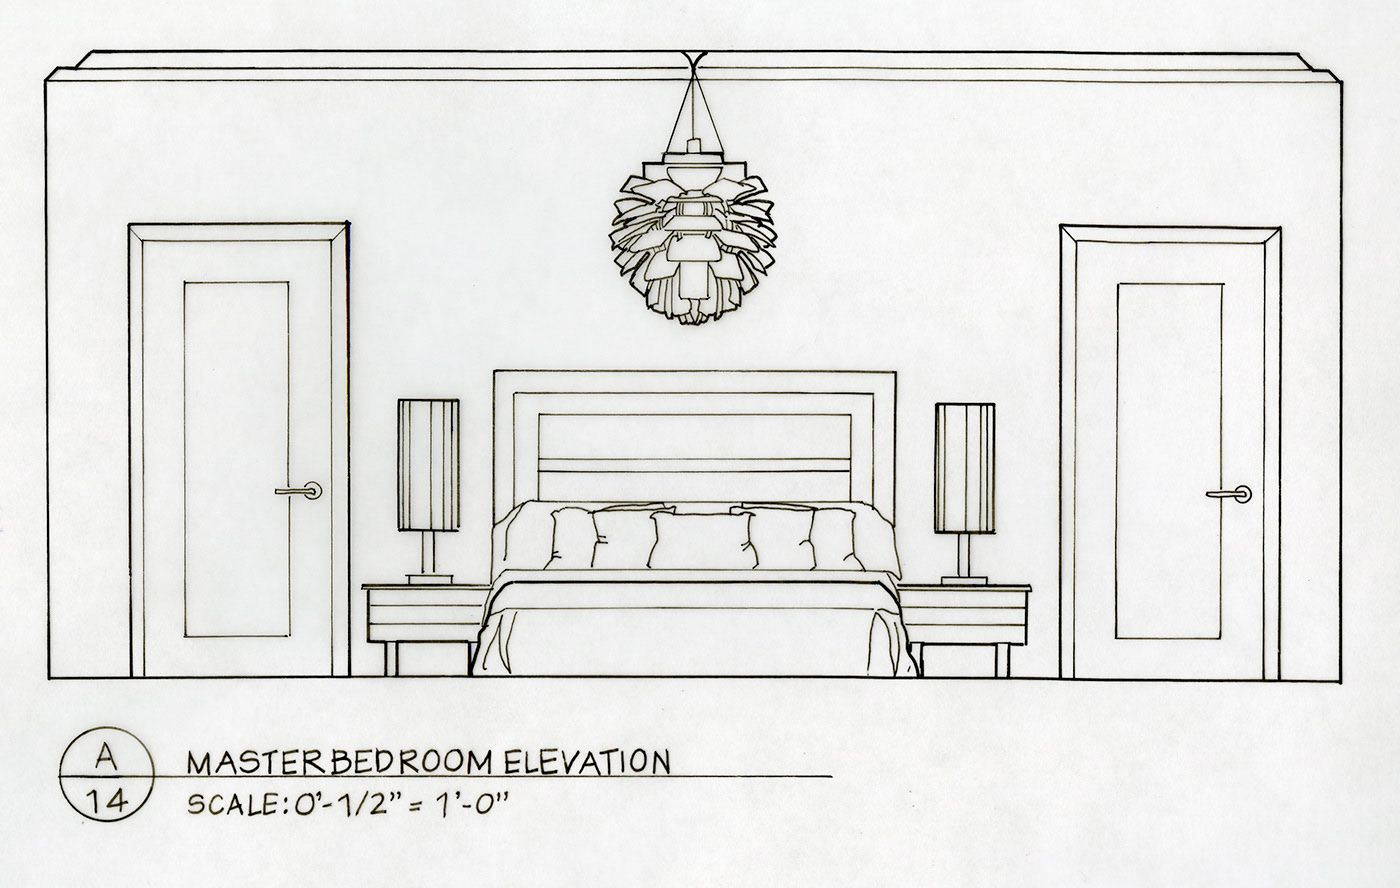 Detailed Elevation Drawings Kitchen Bath Bedroom on